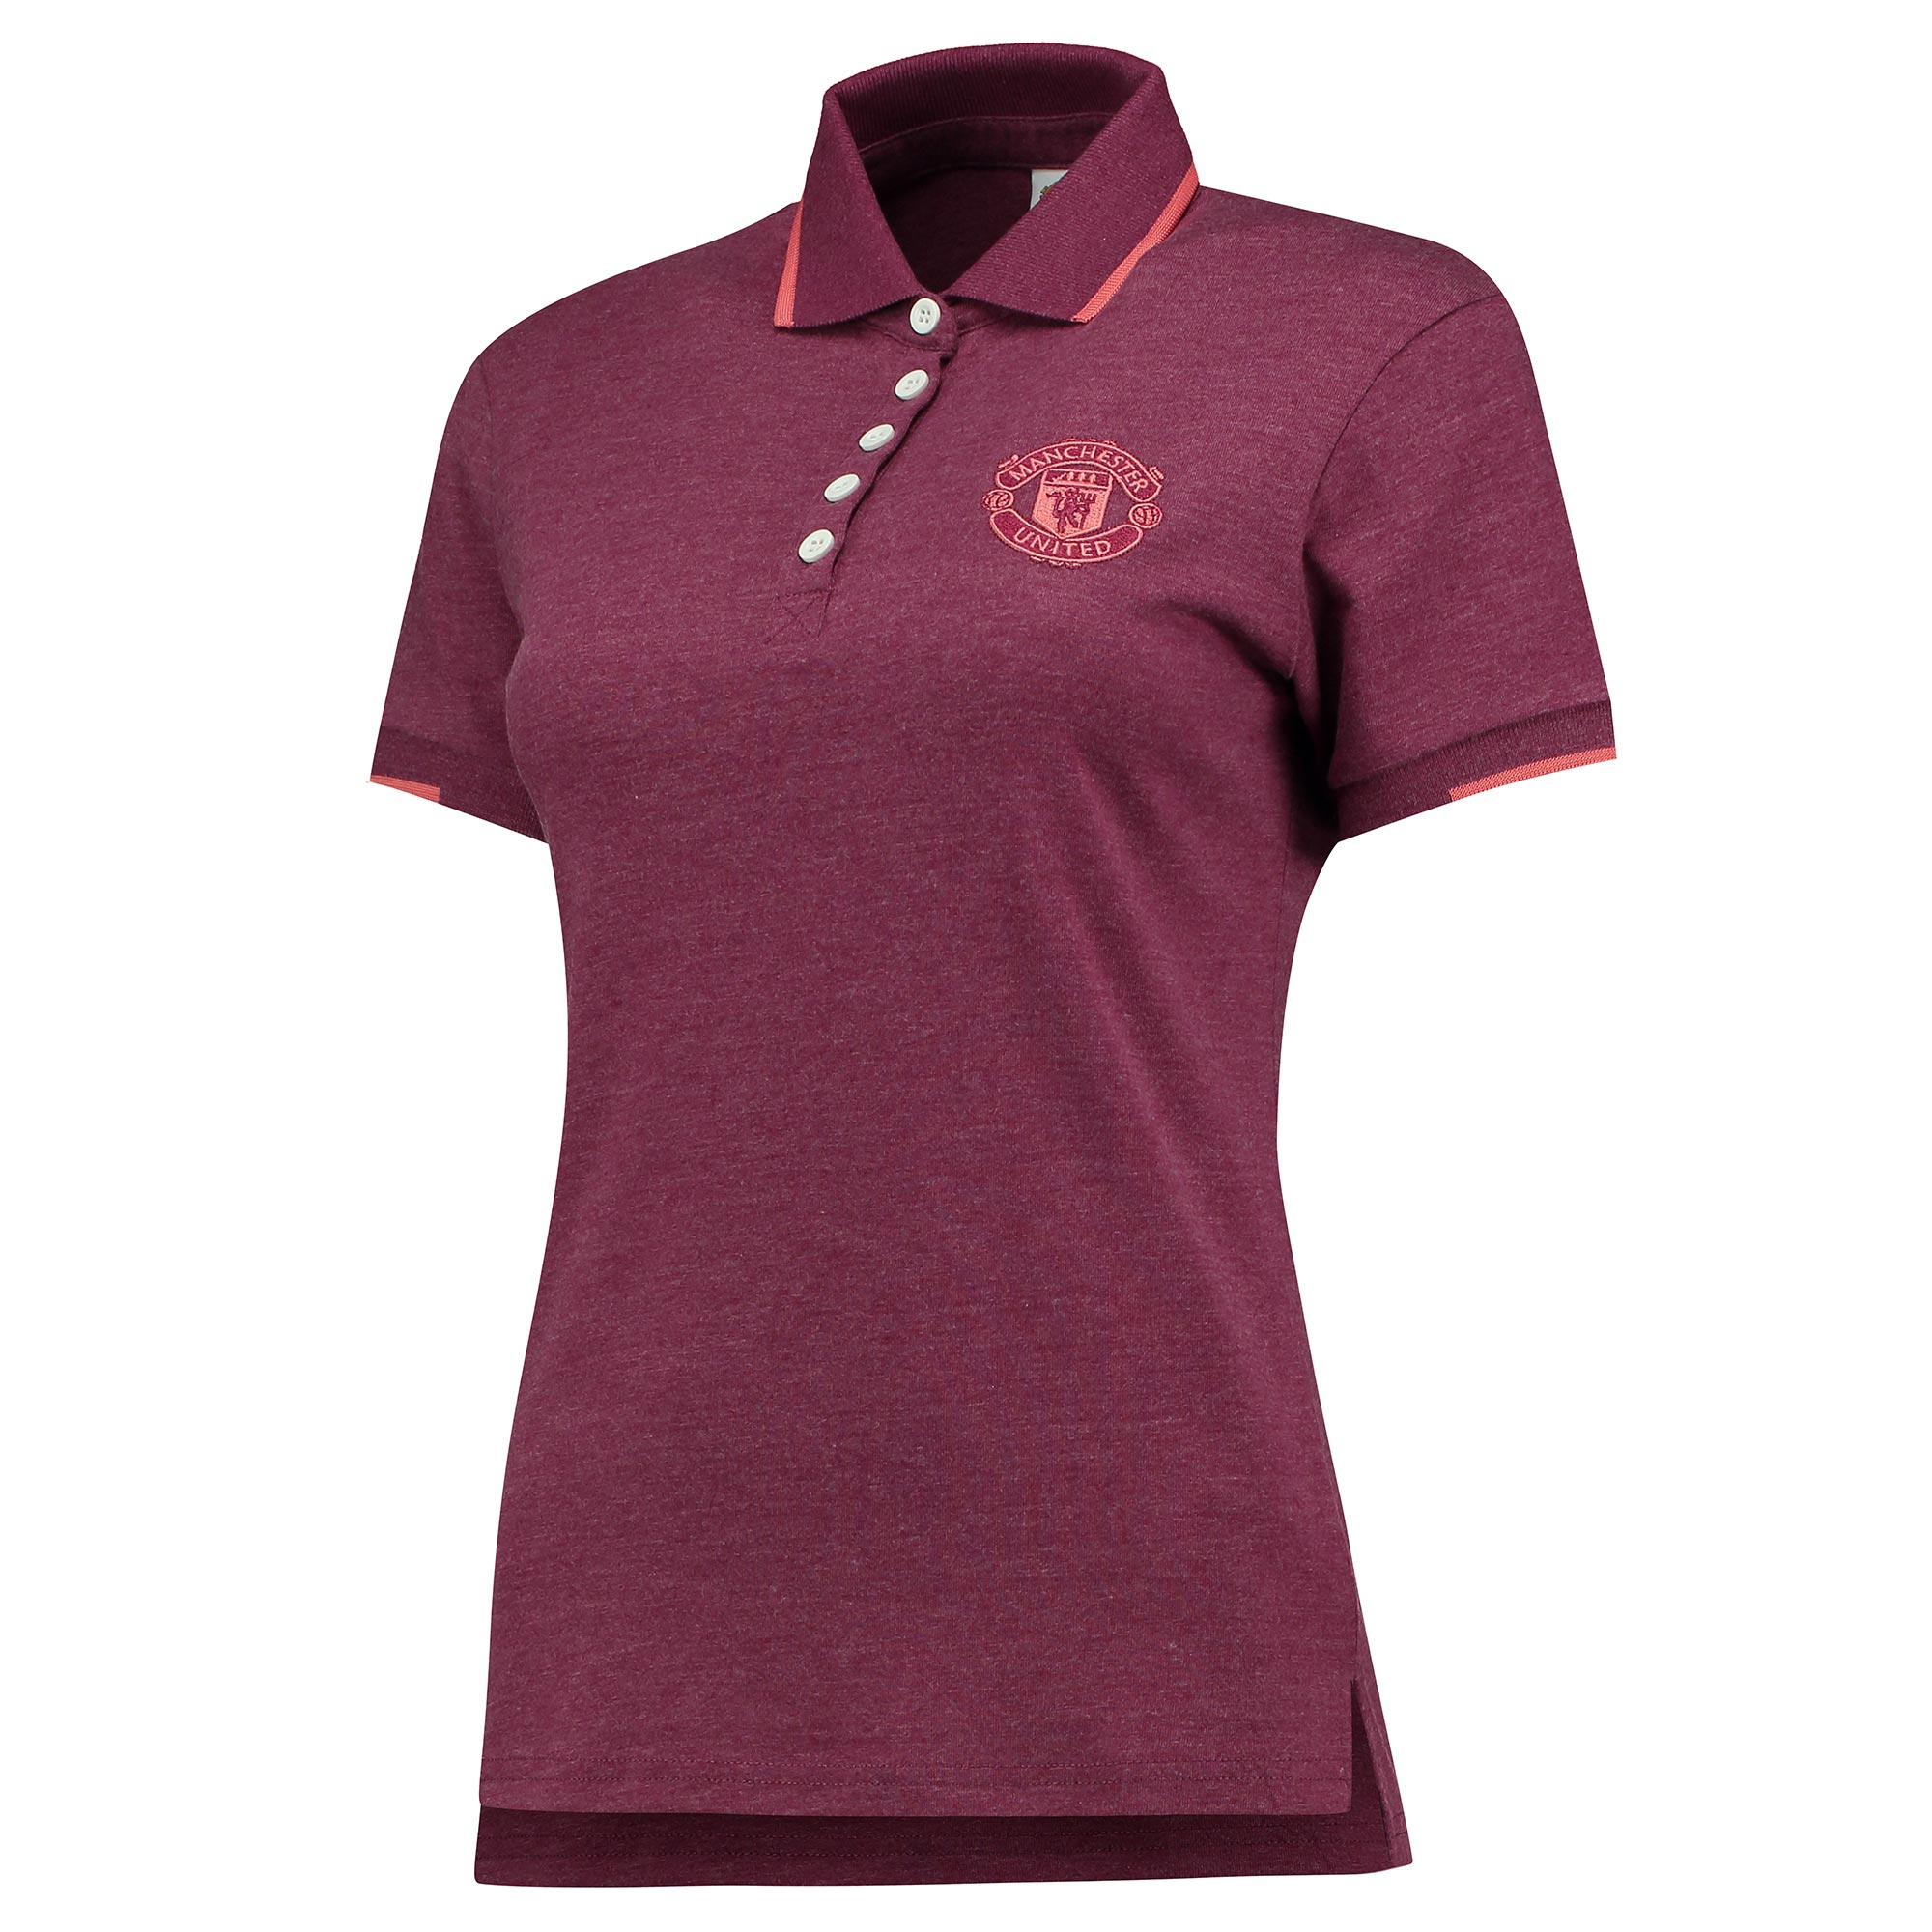 Manchester United Tipped Polo Shirt - Mulberry - Womens